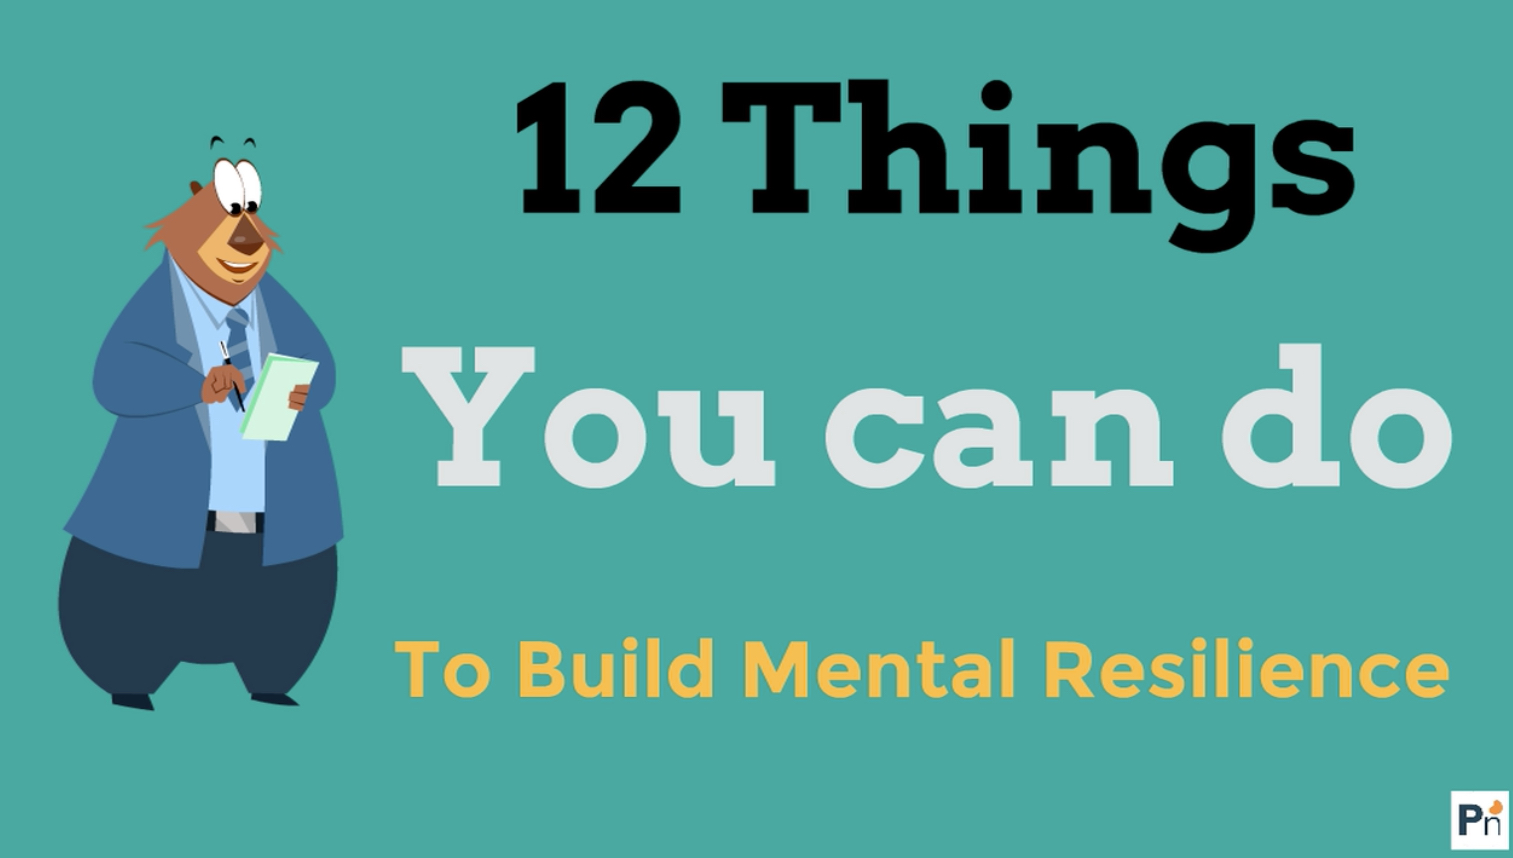 12 Things you can do to build mental resilience